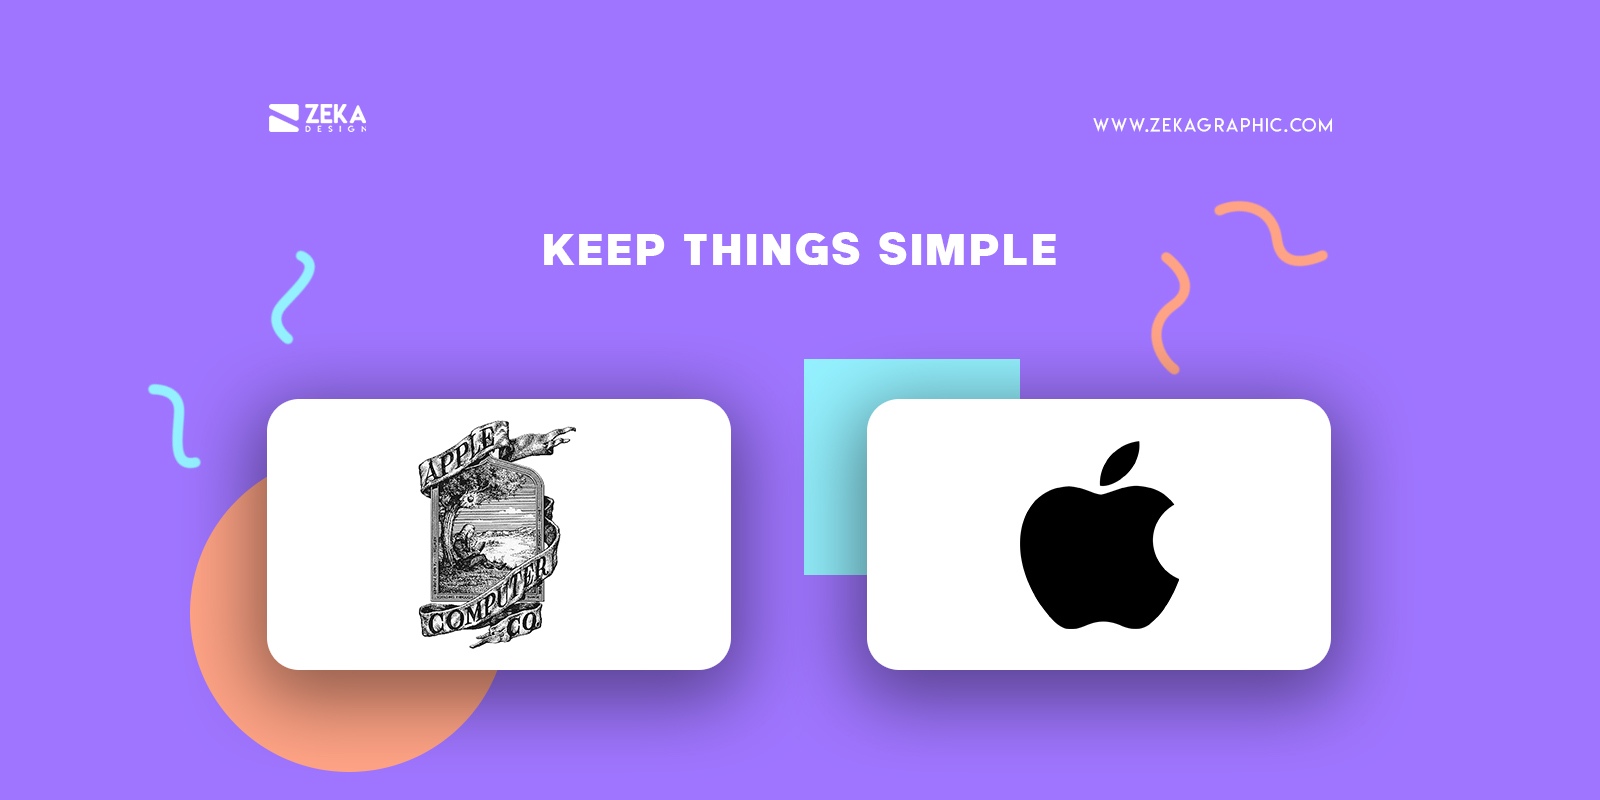 Keep Things Simple for timeless logo design